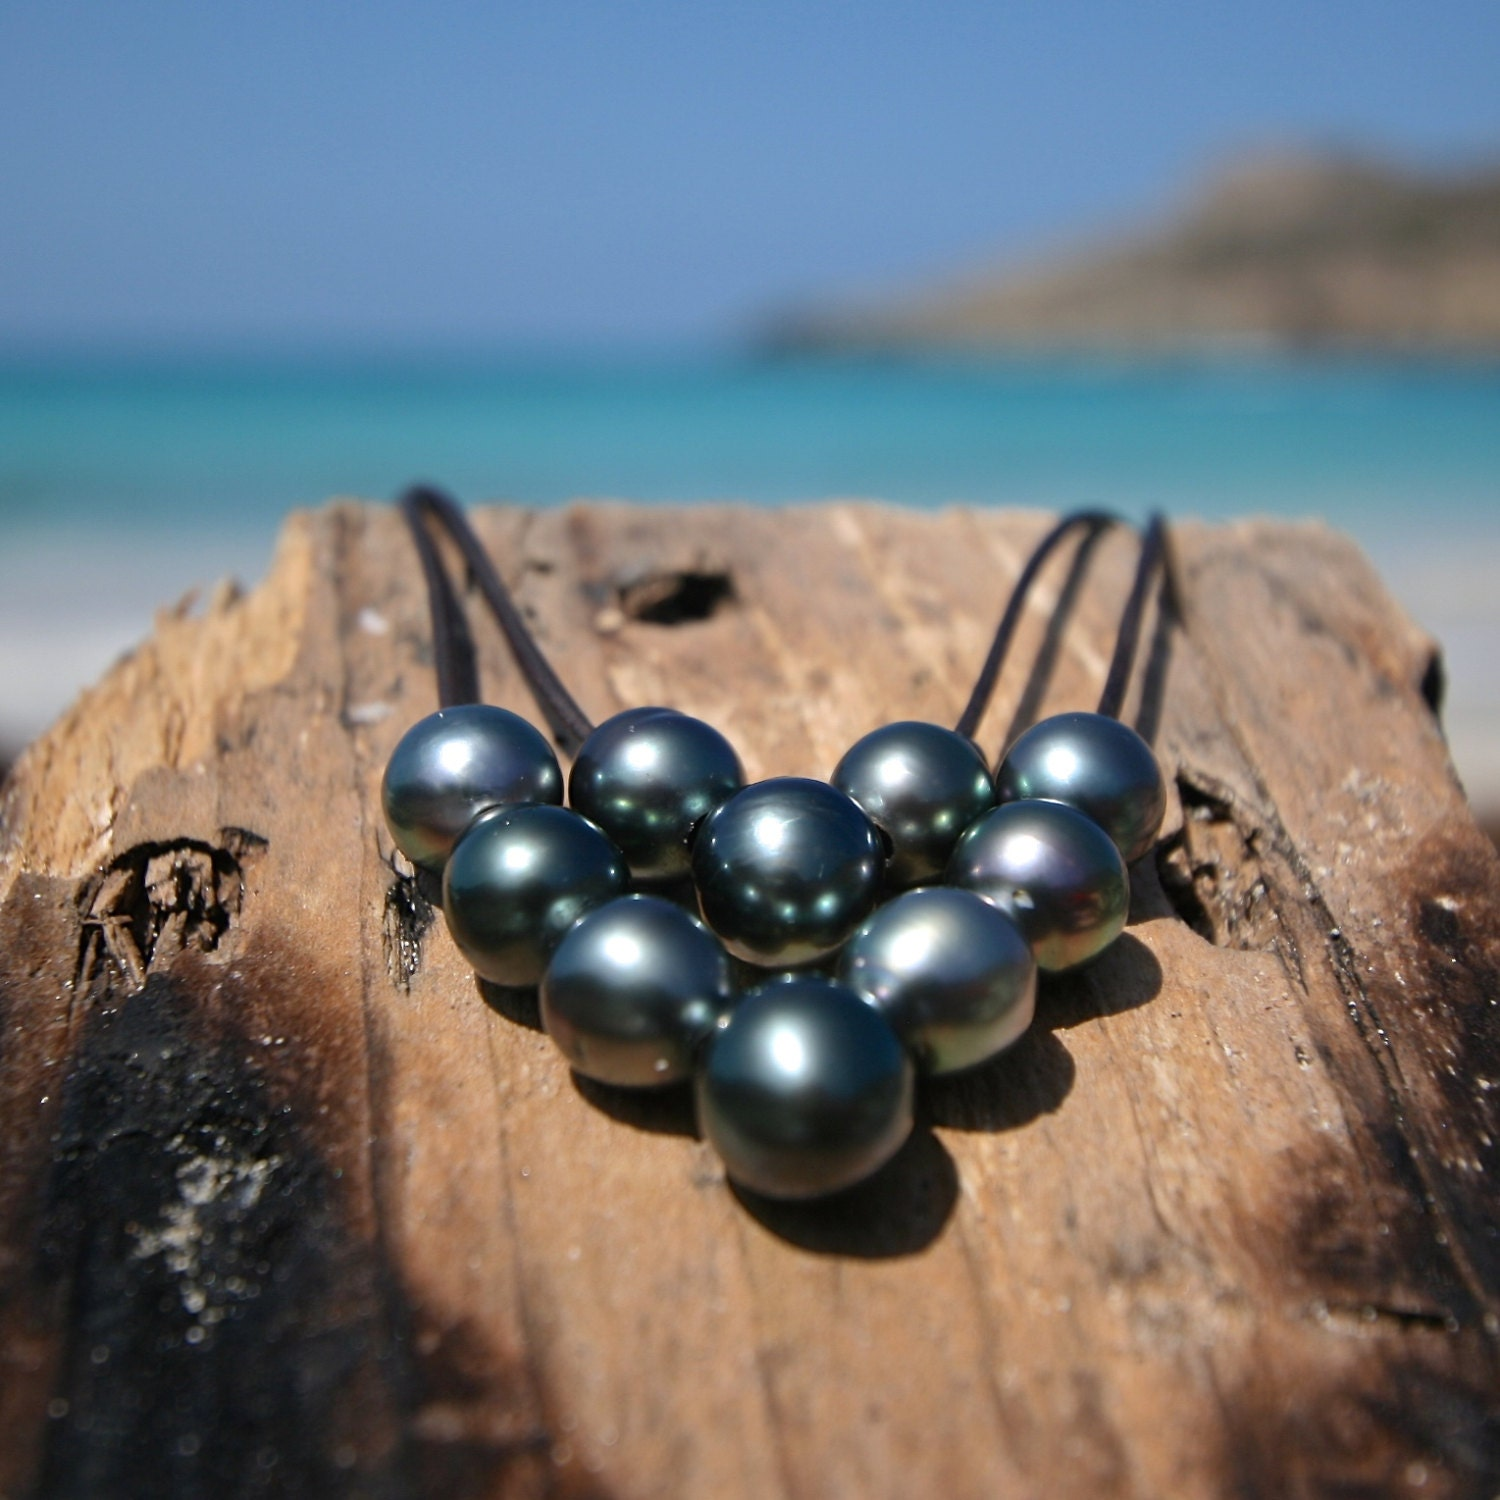 Tahitian Pearl And Leather Necklace: Pearls And Leather Necklace For Women Seaside Beach Jewelry